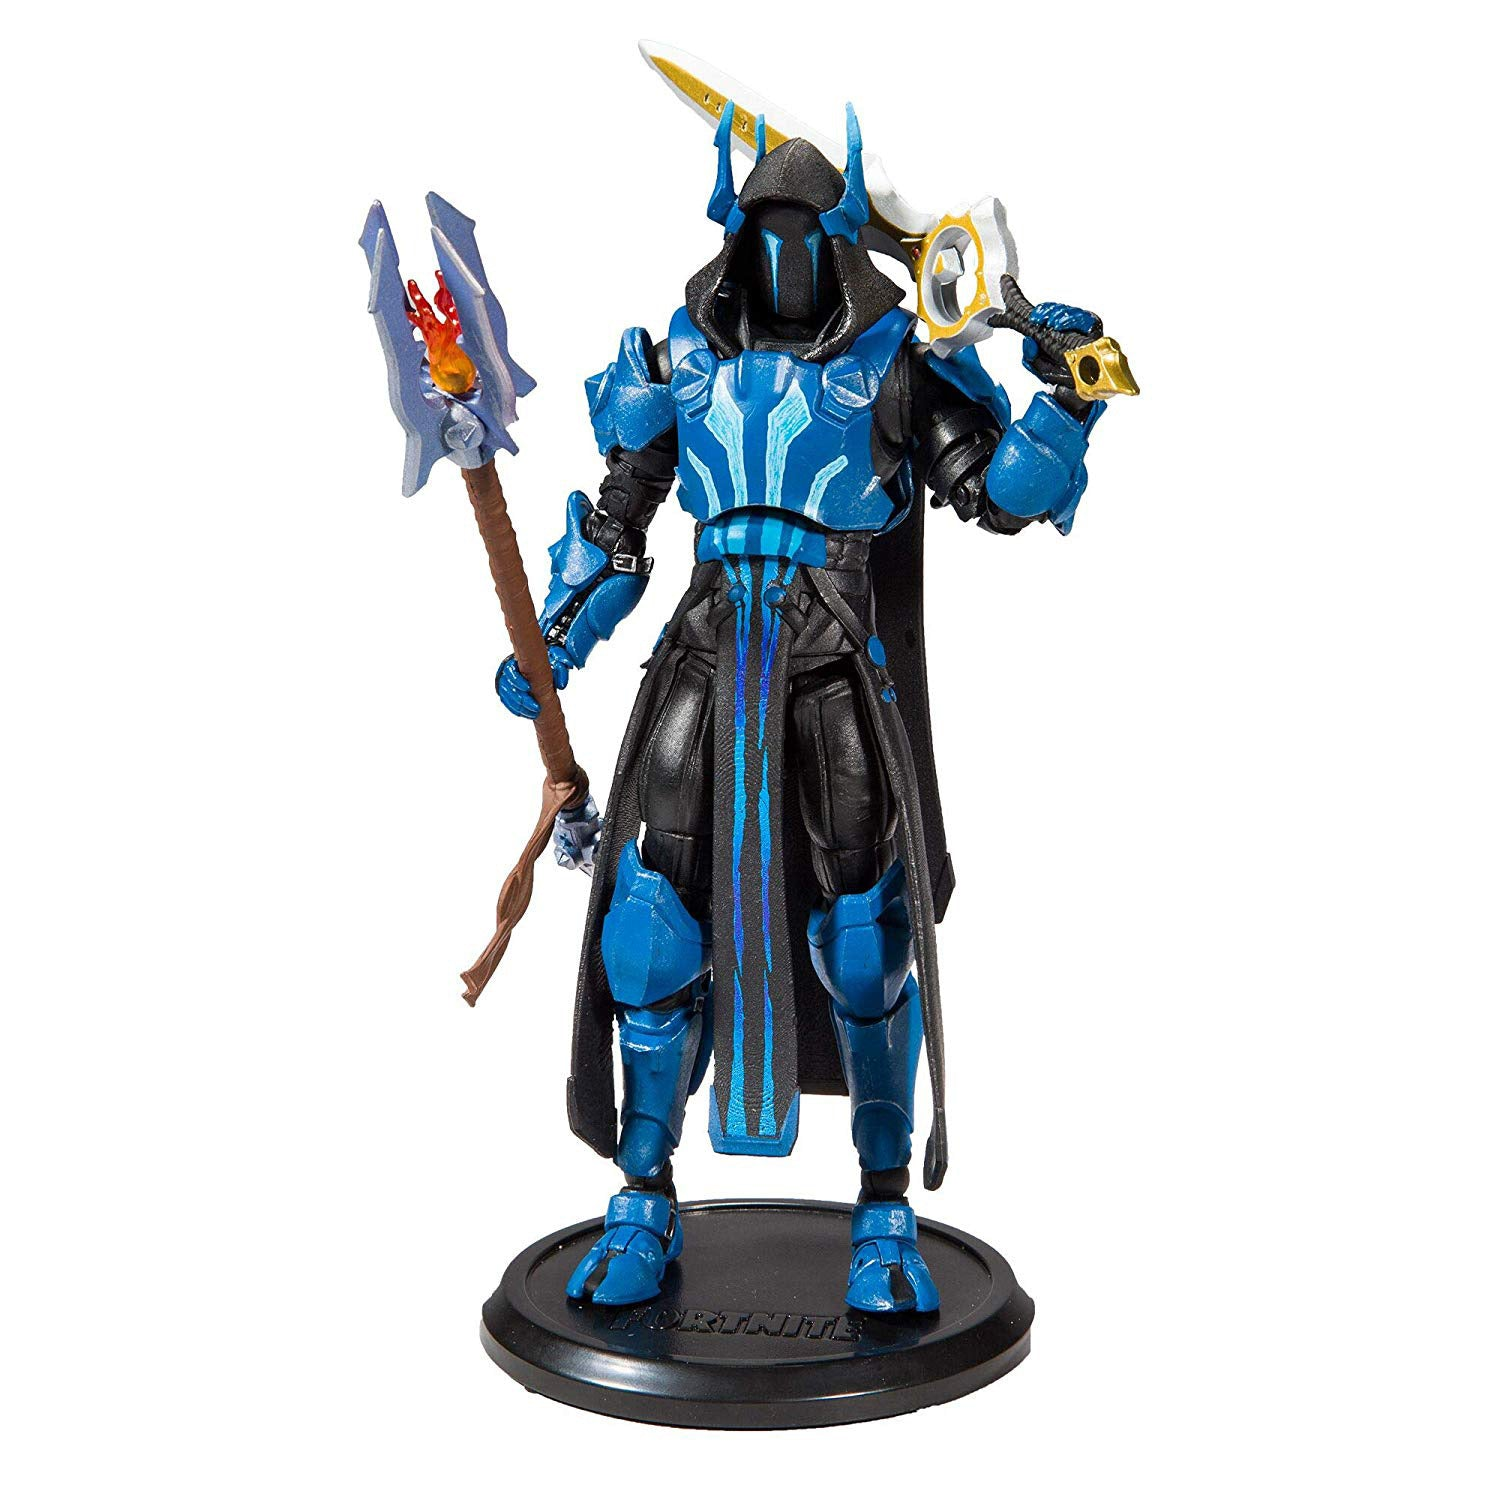 Fortnite Ice King 7 inch Premium Action Figure